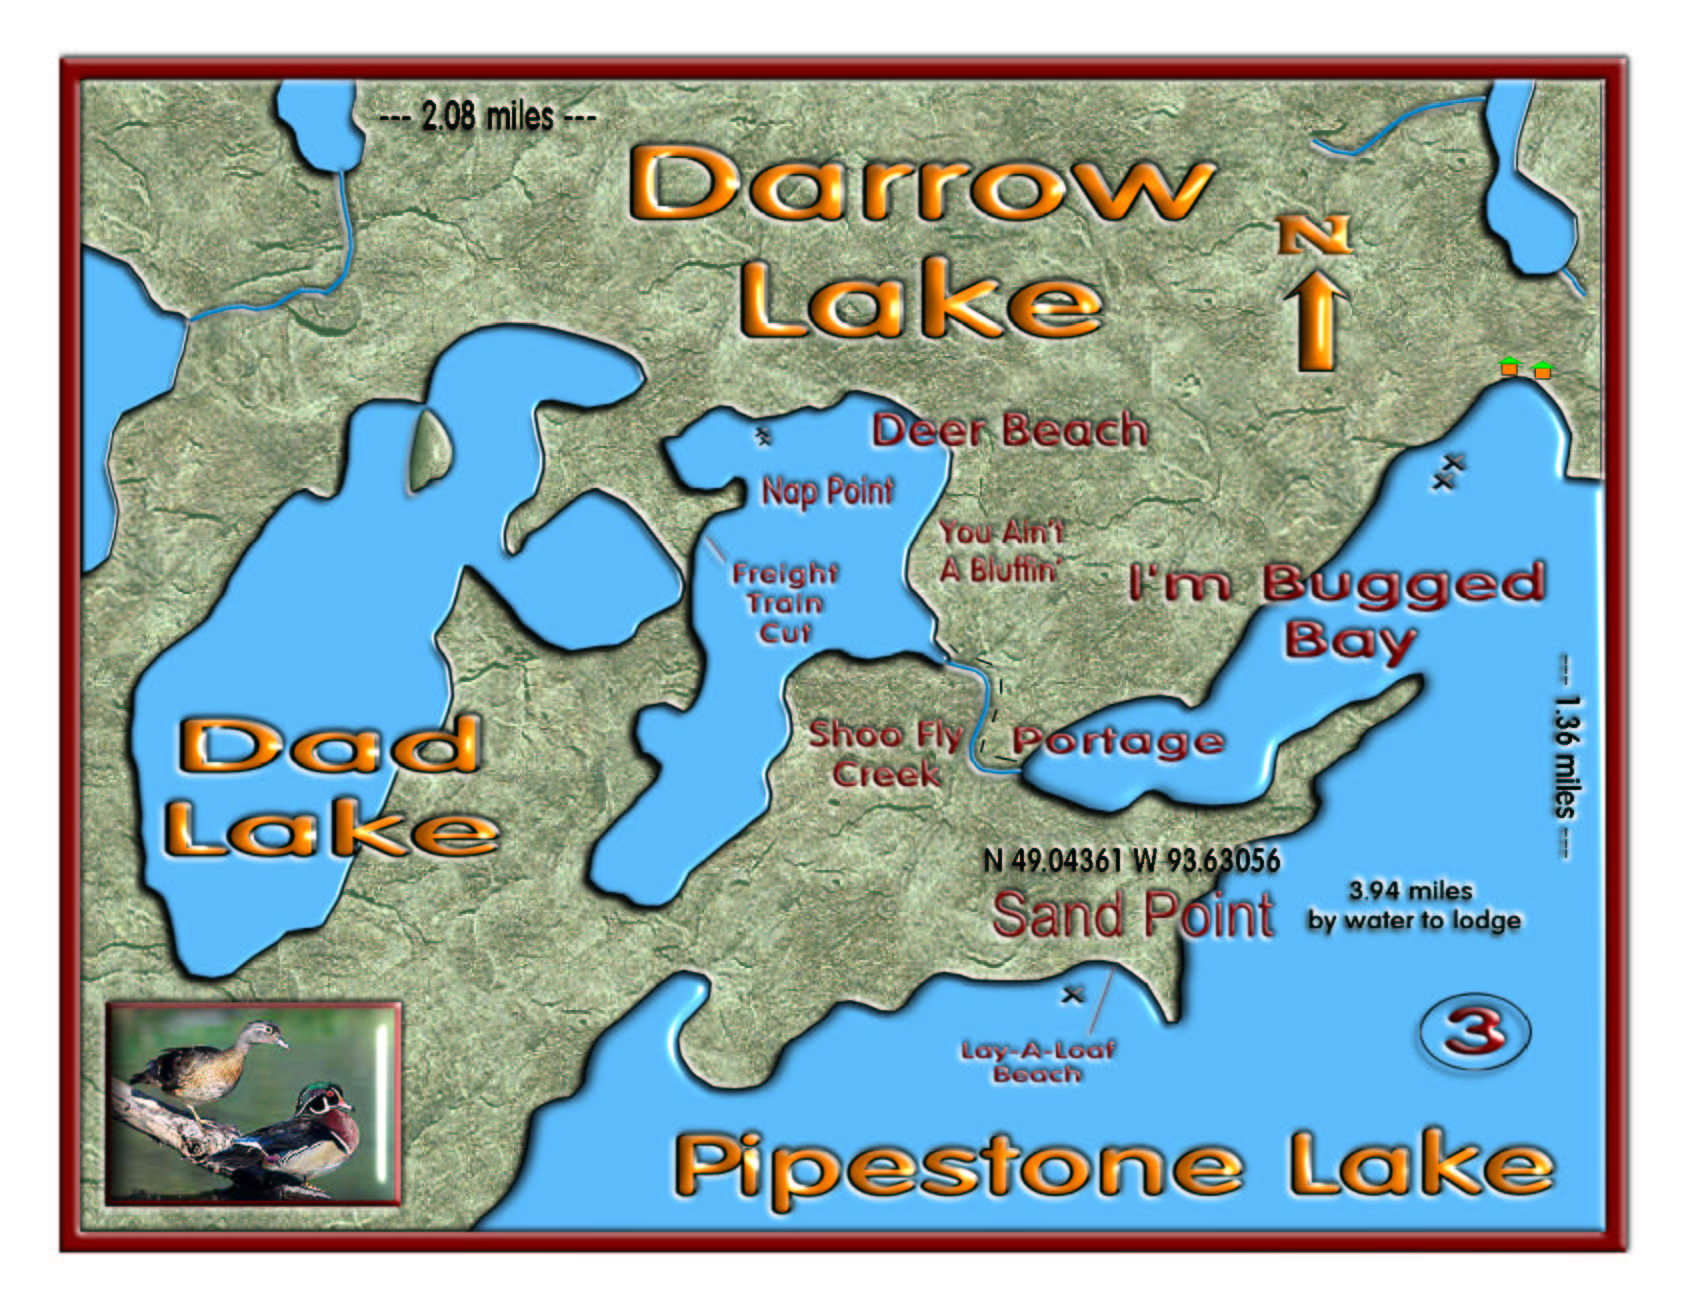 Darrow Lake map